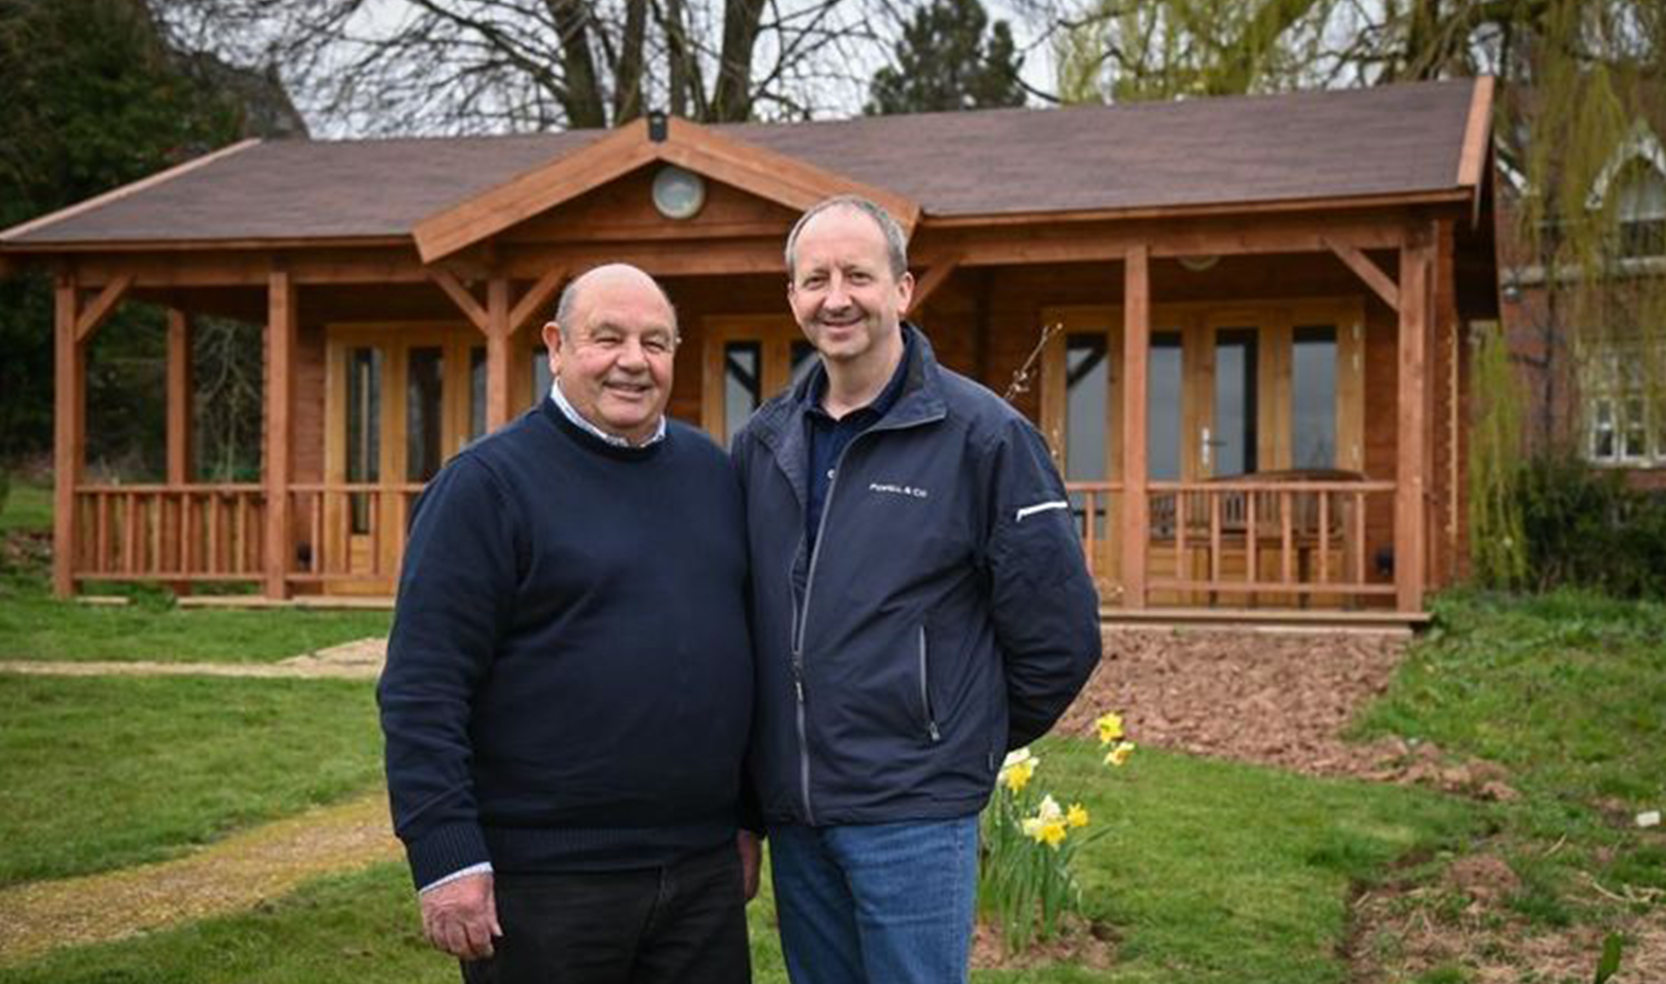 A multi-use summer house offering one of the best views at St Michael's is up and running